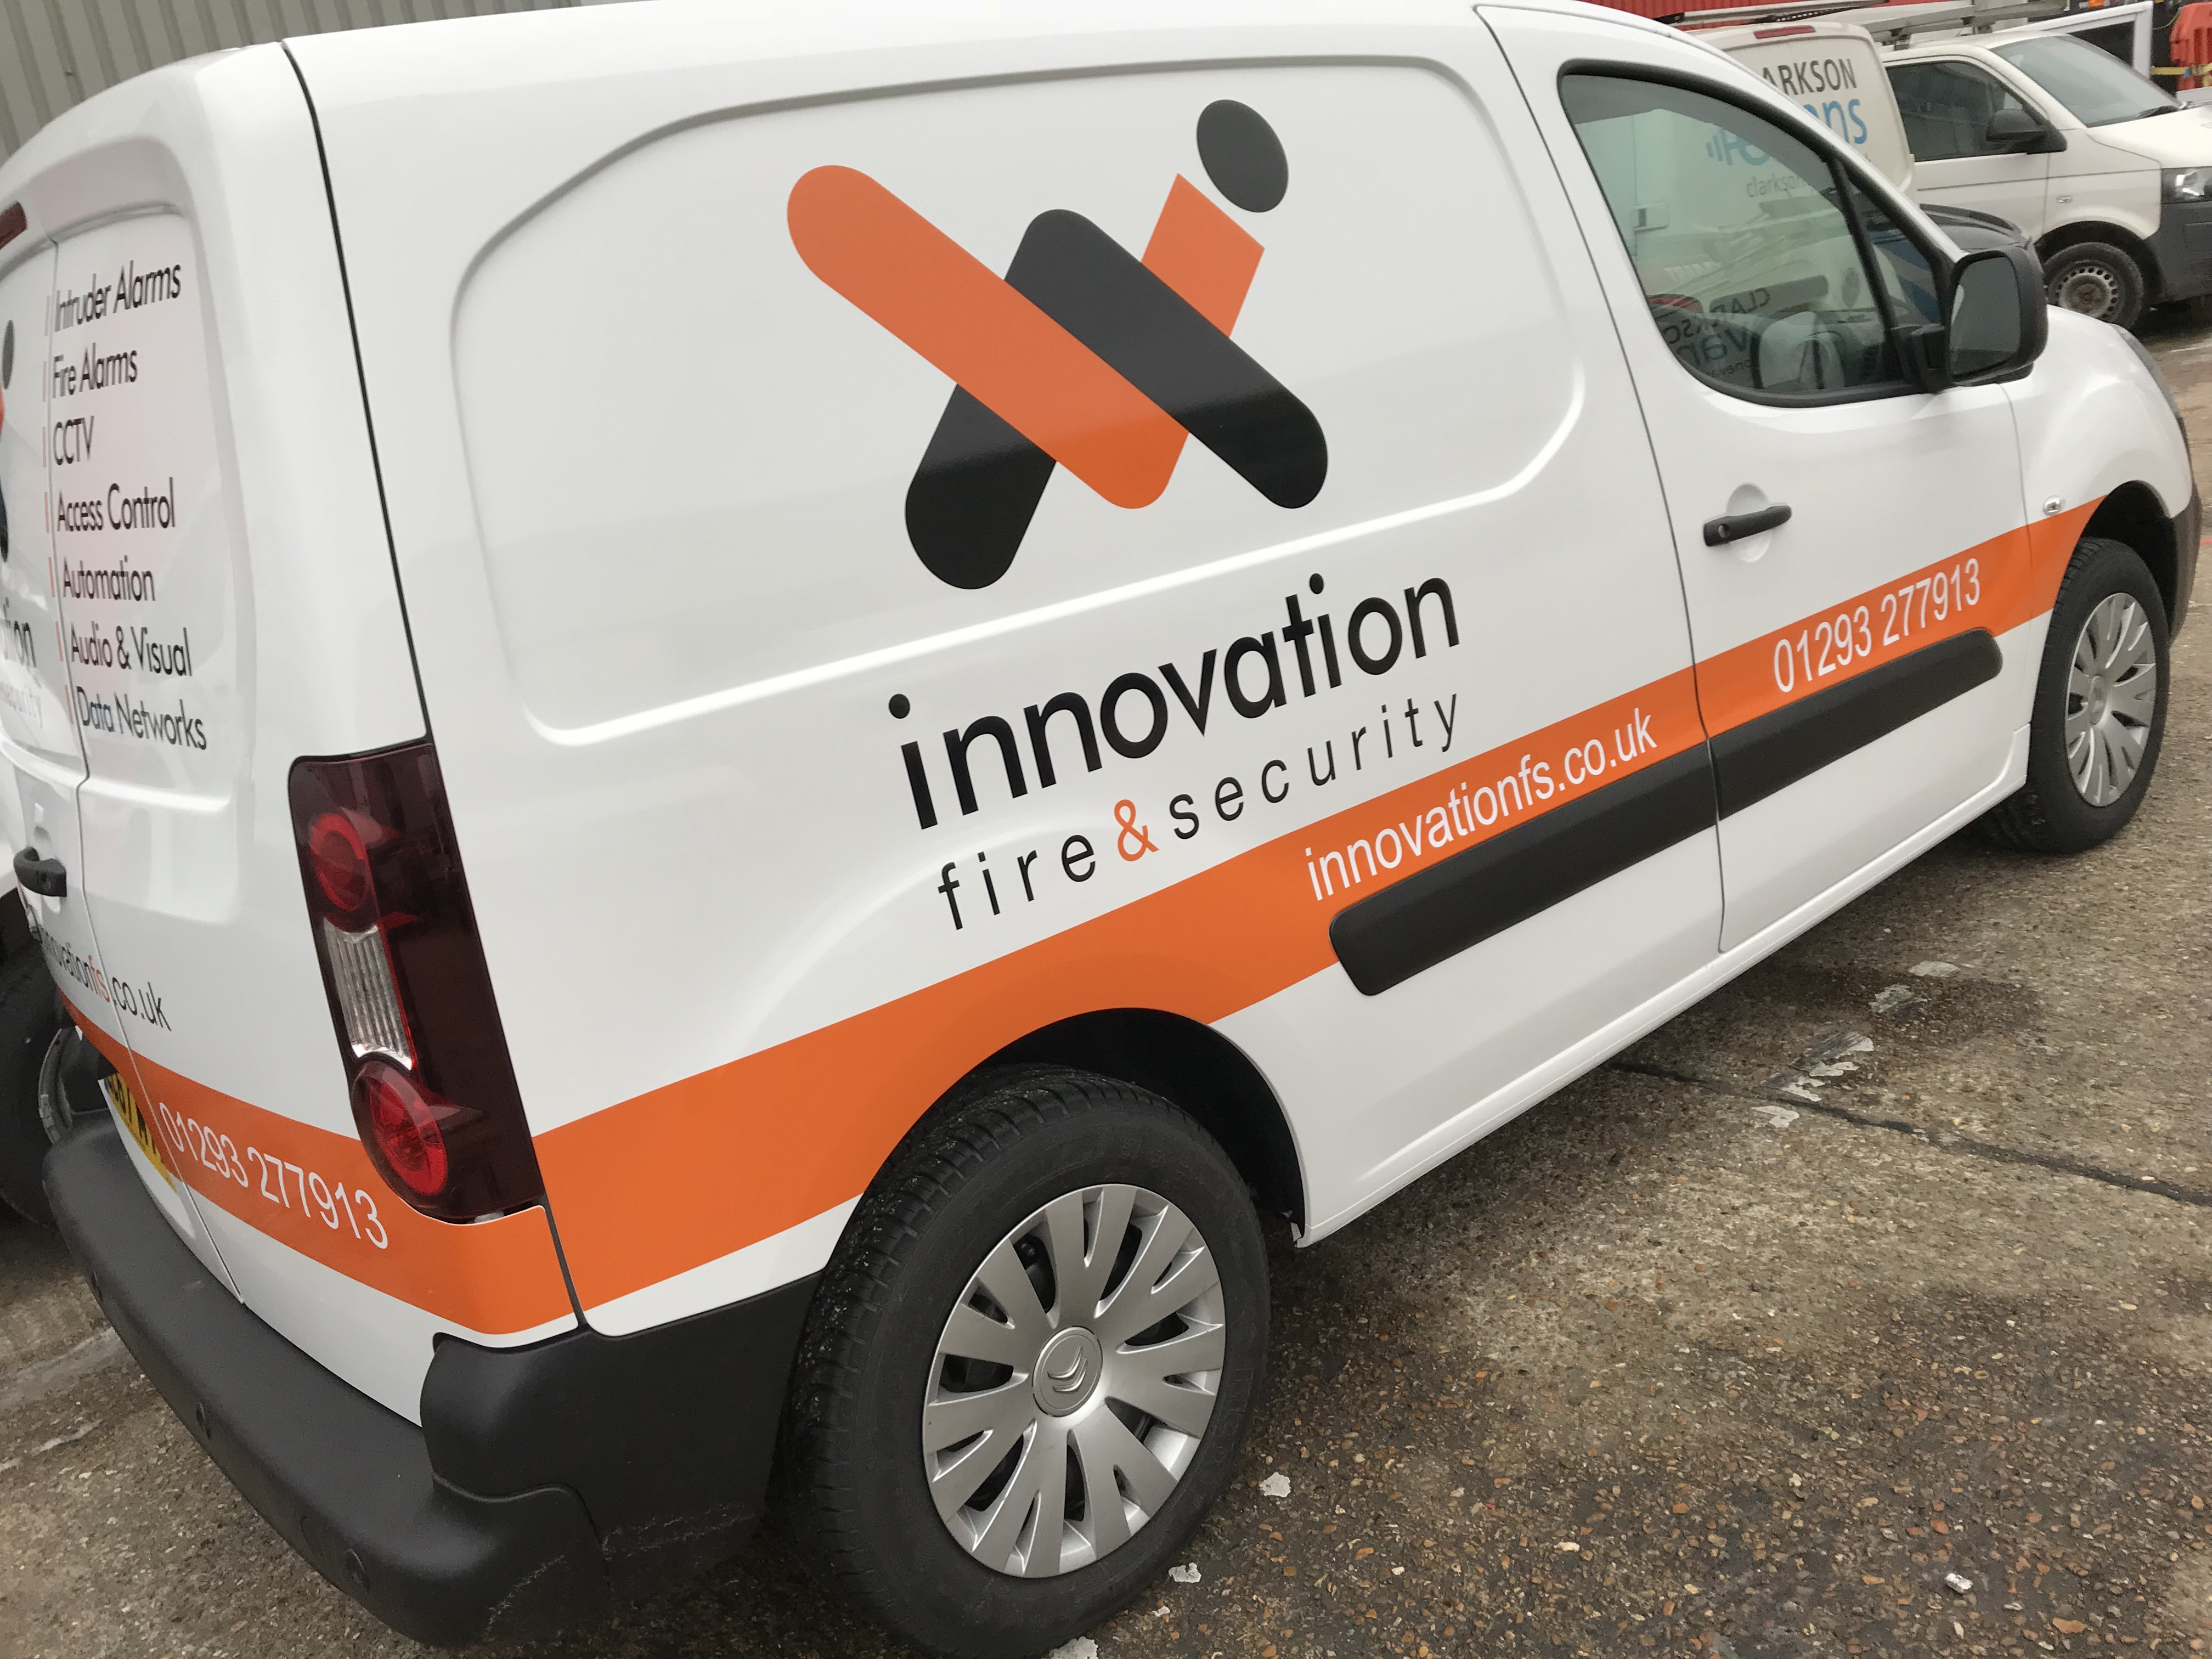 INNOVATION FIRE & SECURITY BERLINGO